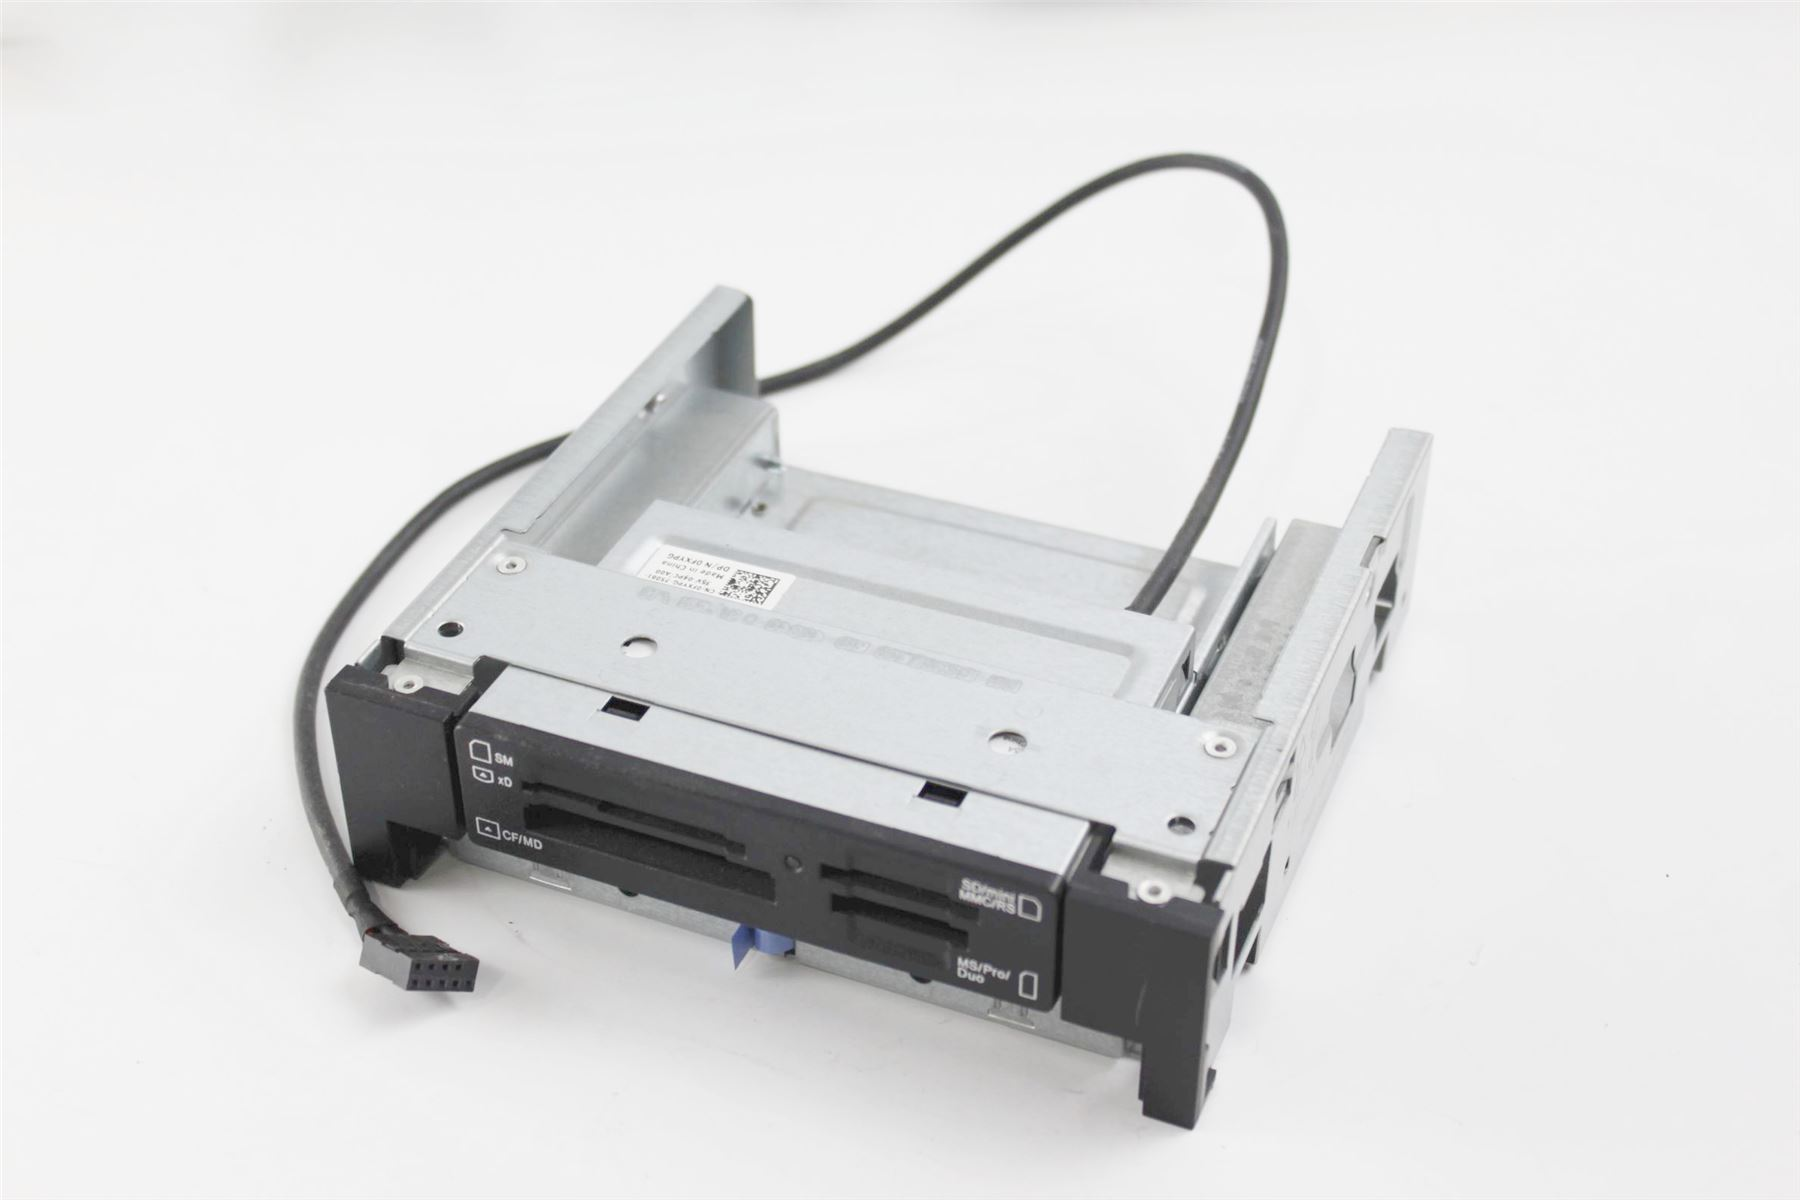 Details about Dell Inspiron 570 537S Optiplex 990 9010 7010 790 Media Flash  Card Reader 0FXYPG